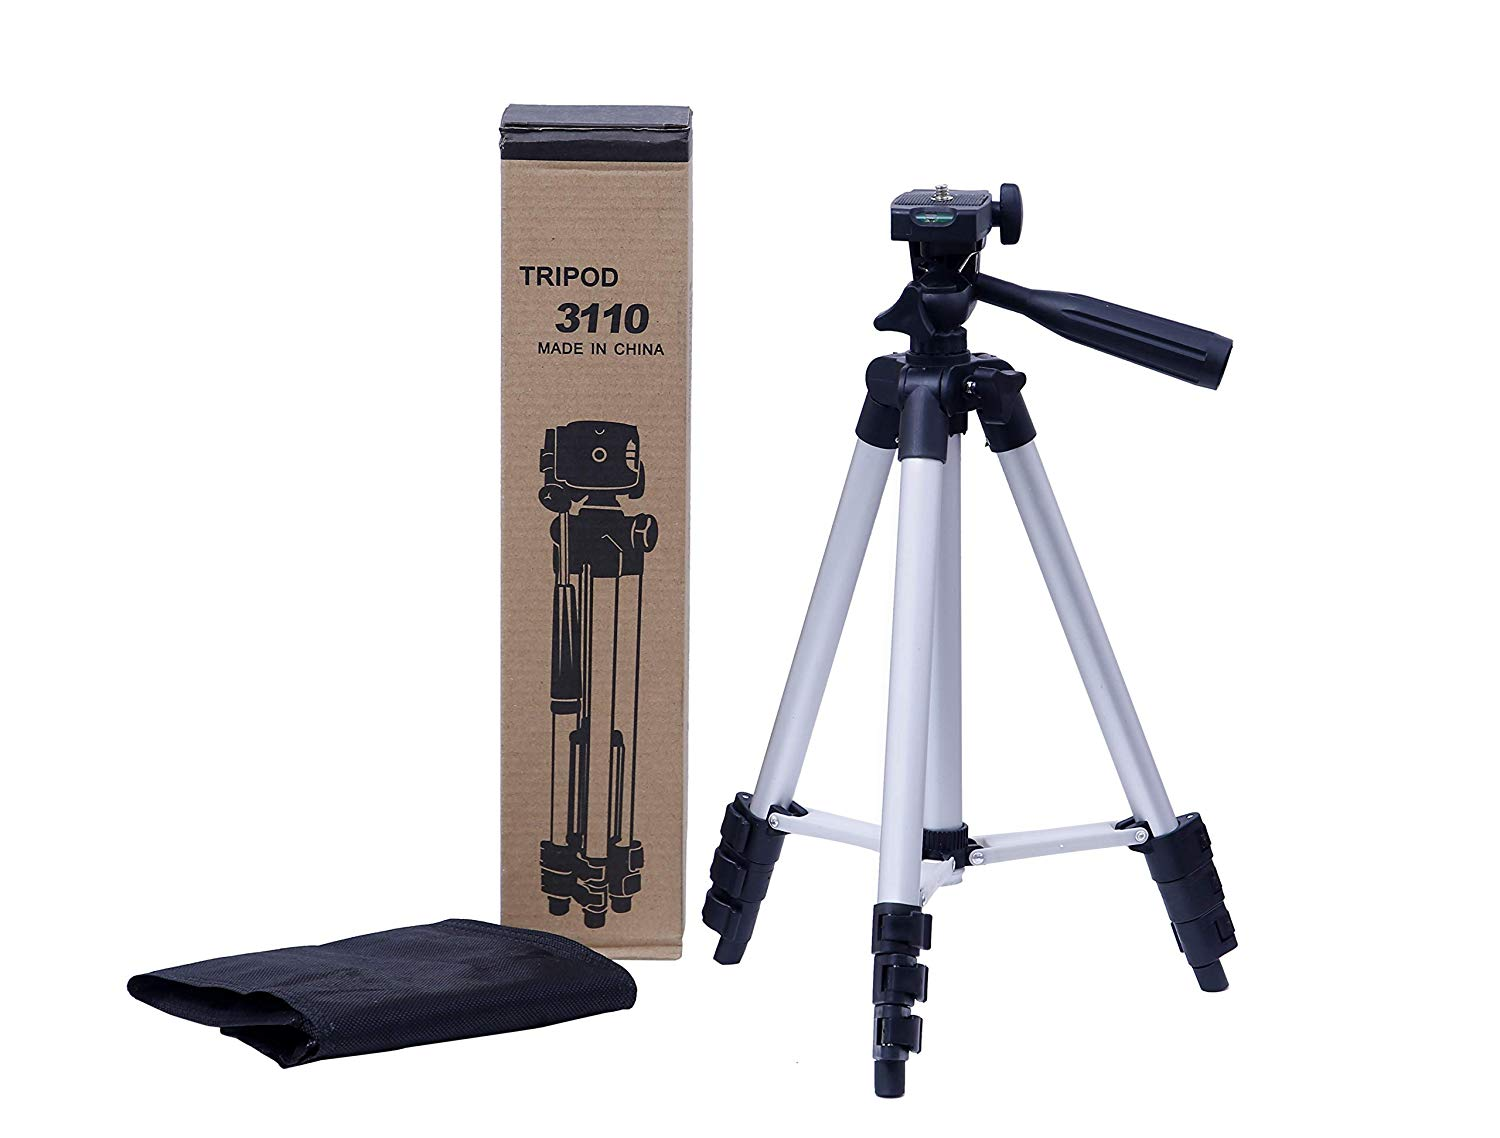 Sami 3110 Foldable Camera Tripod With Mobile Clip Holder Bracket, Fully Flexible Mount Cum Tripod, Standwith 3D Head & Quick Release Plate (Black)